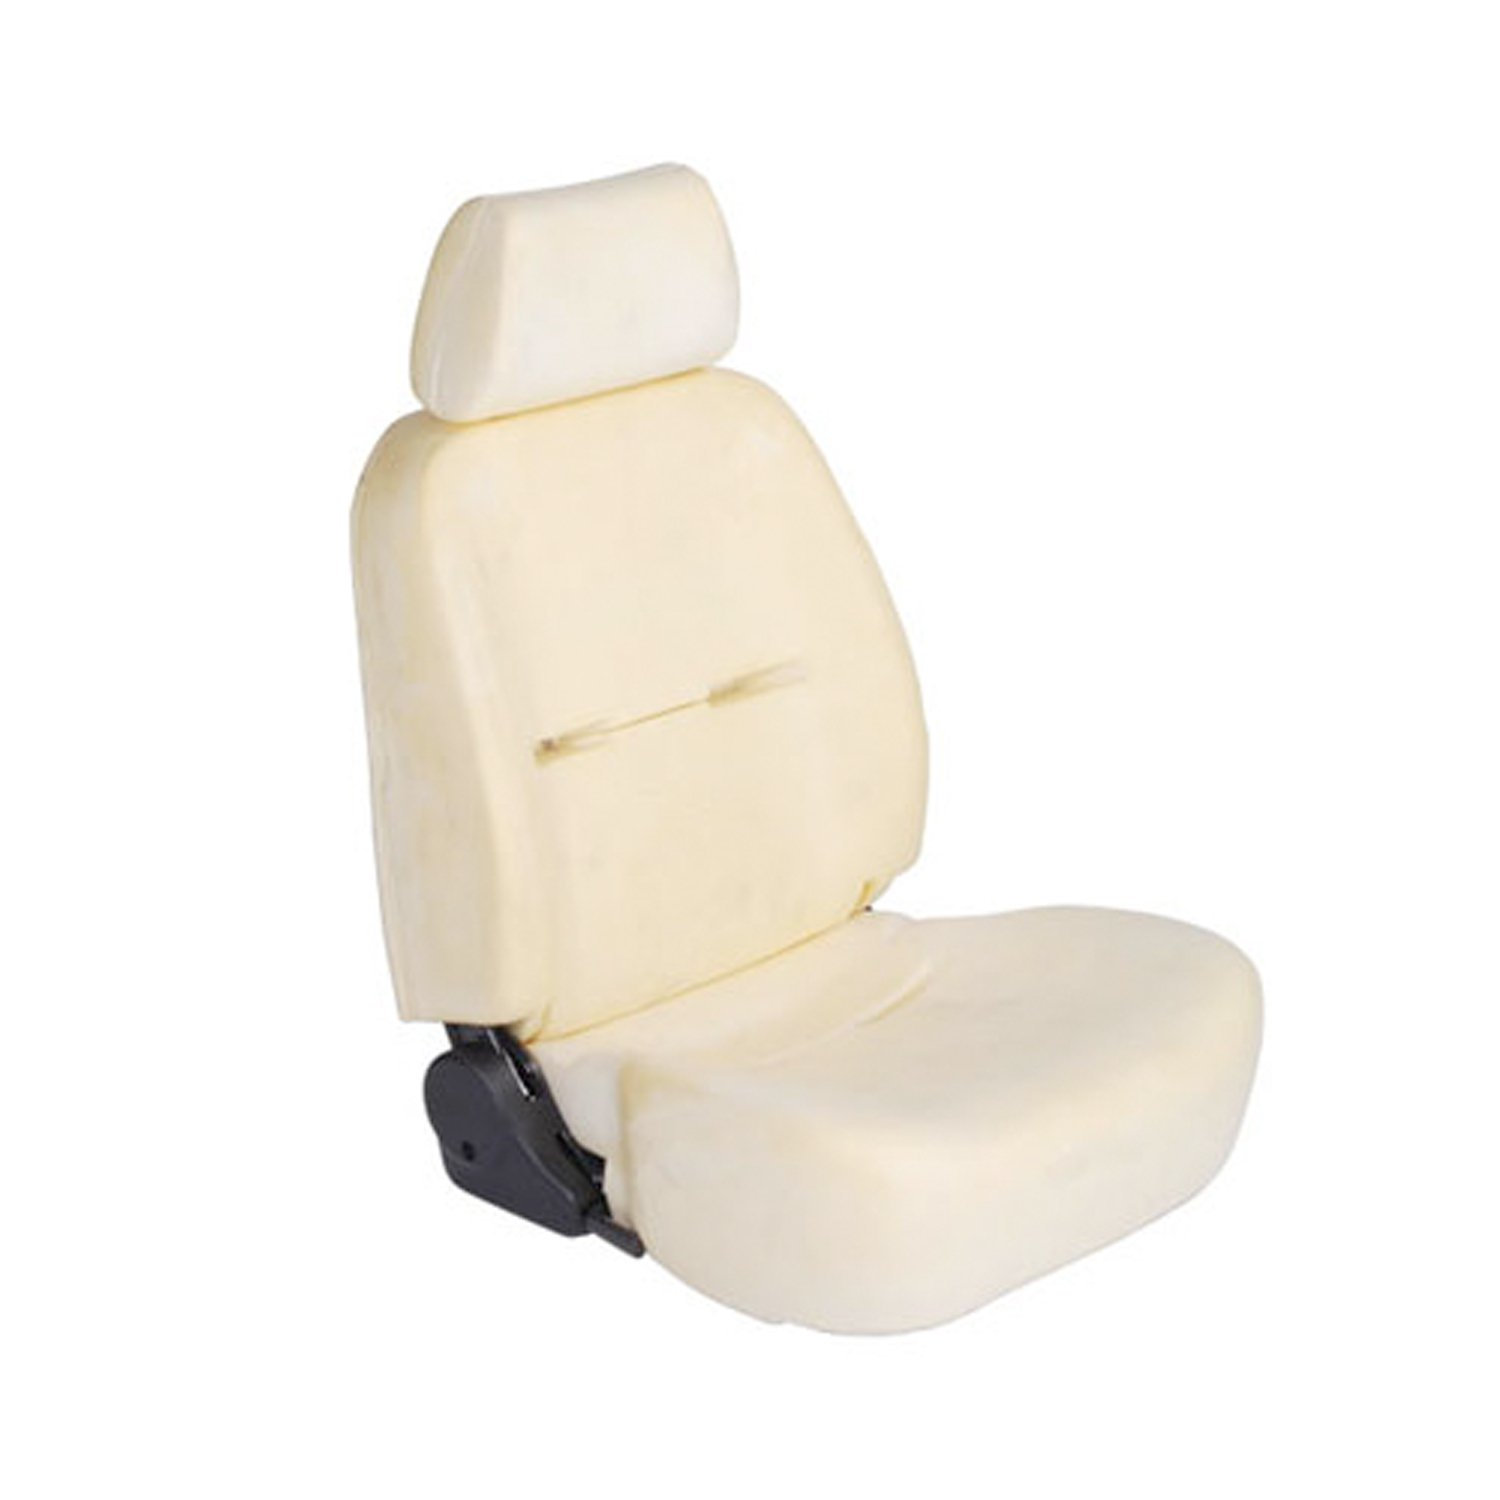 ProCar By Scat 80 1300 99R PRO 90 Series Bare Right Recliner Seat With Headrest Seats